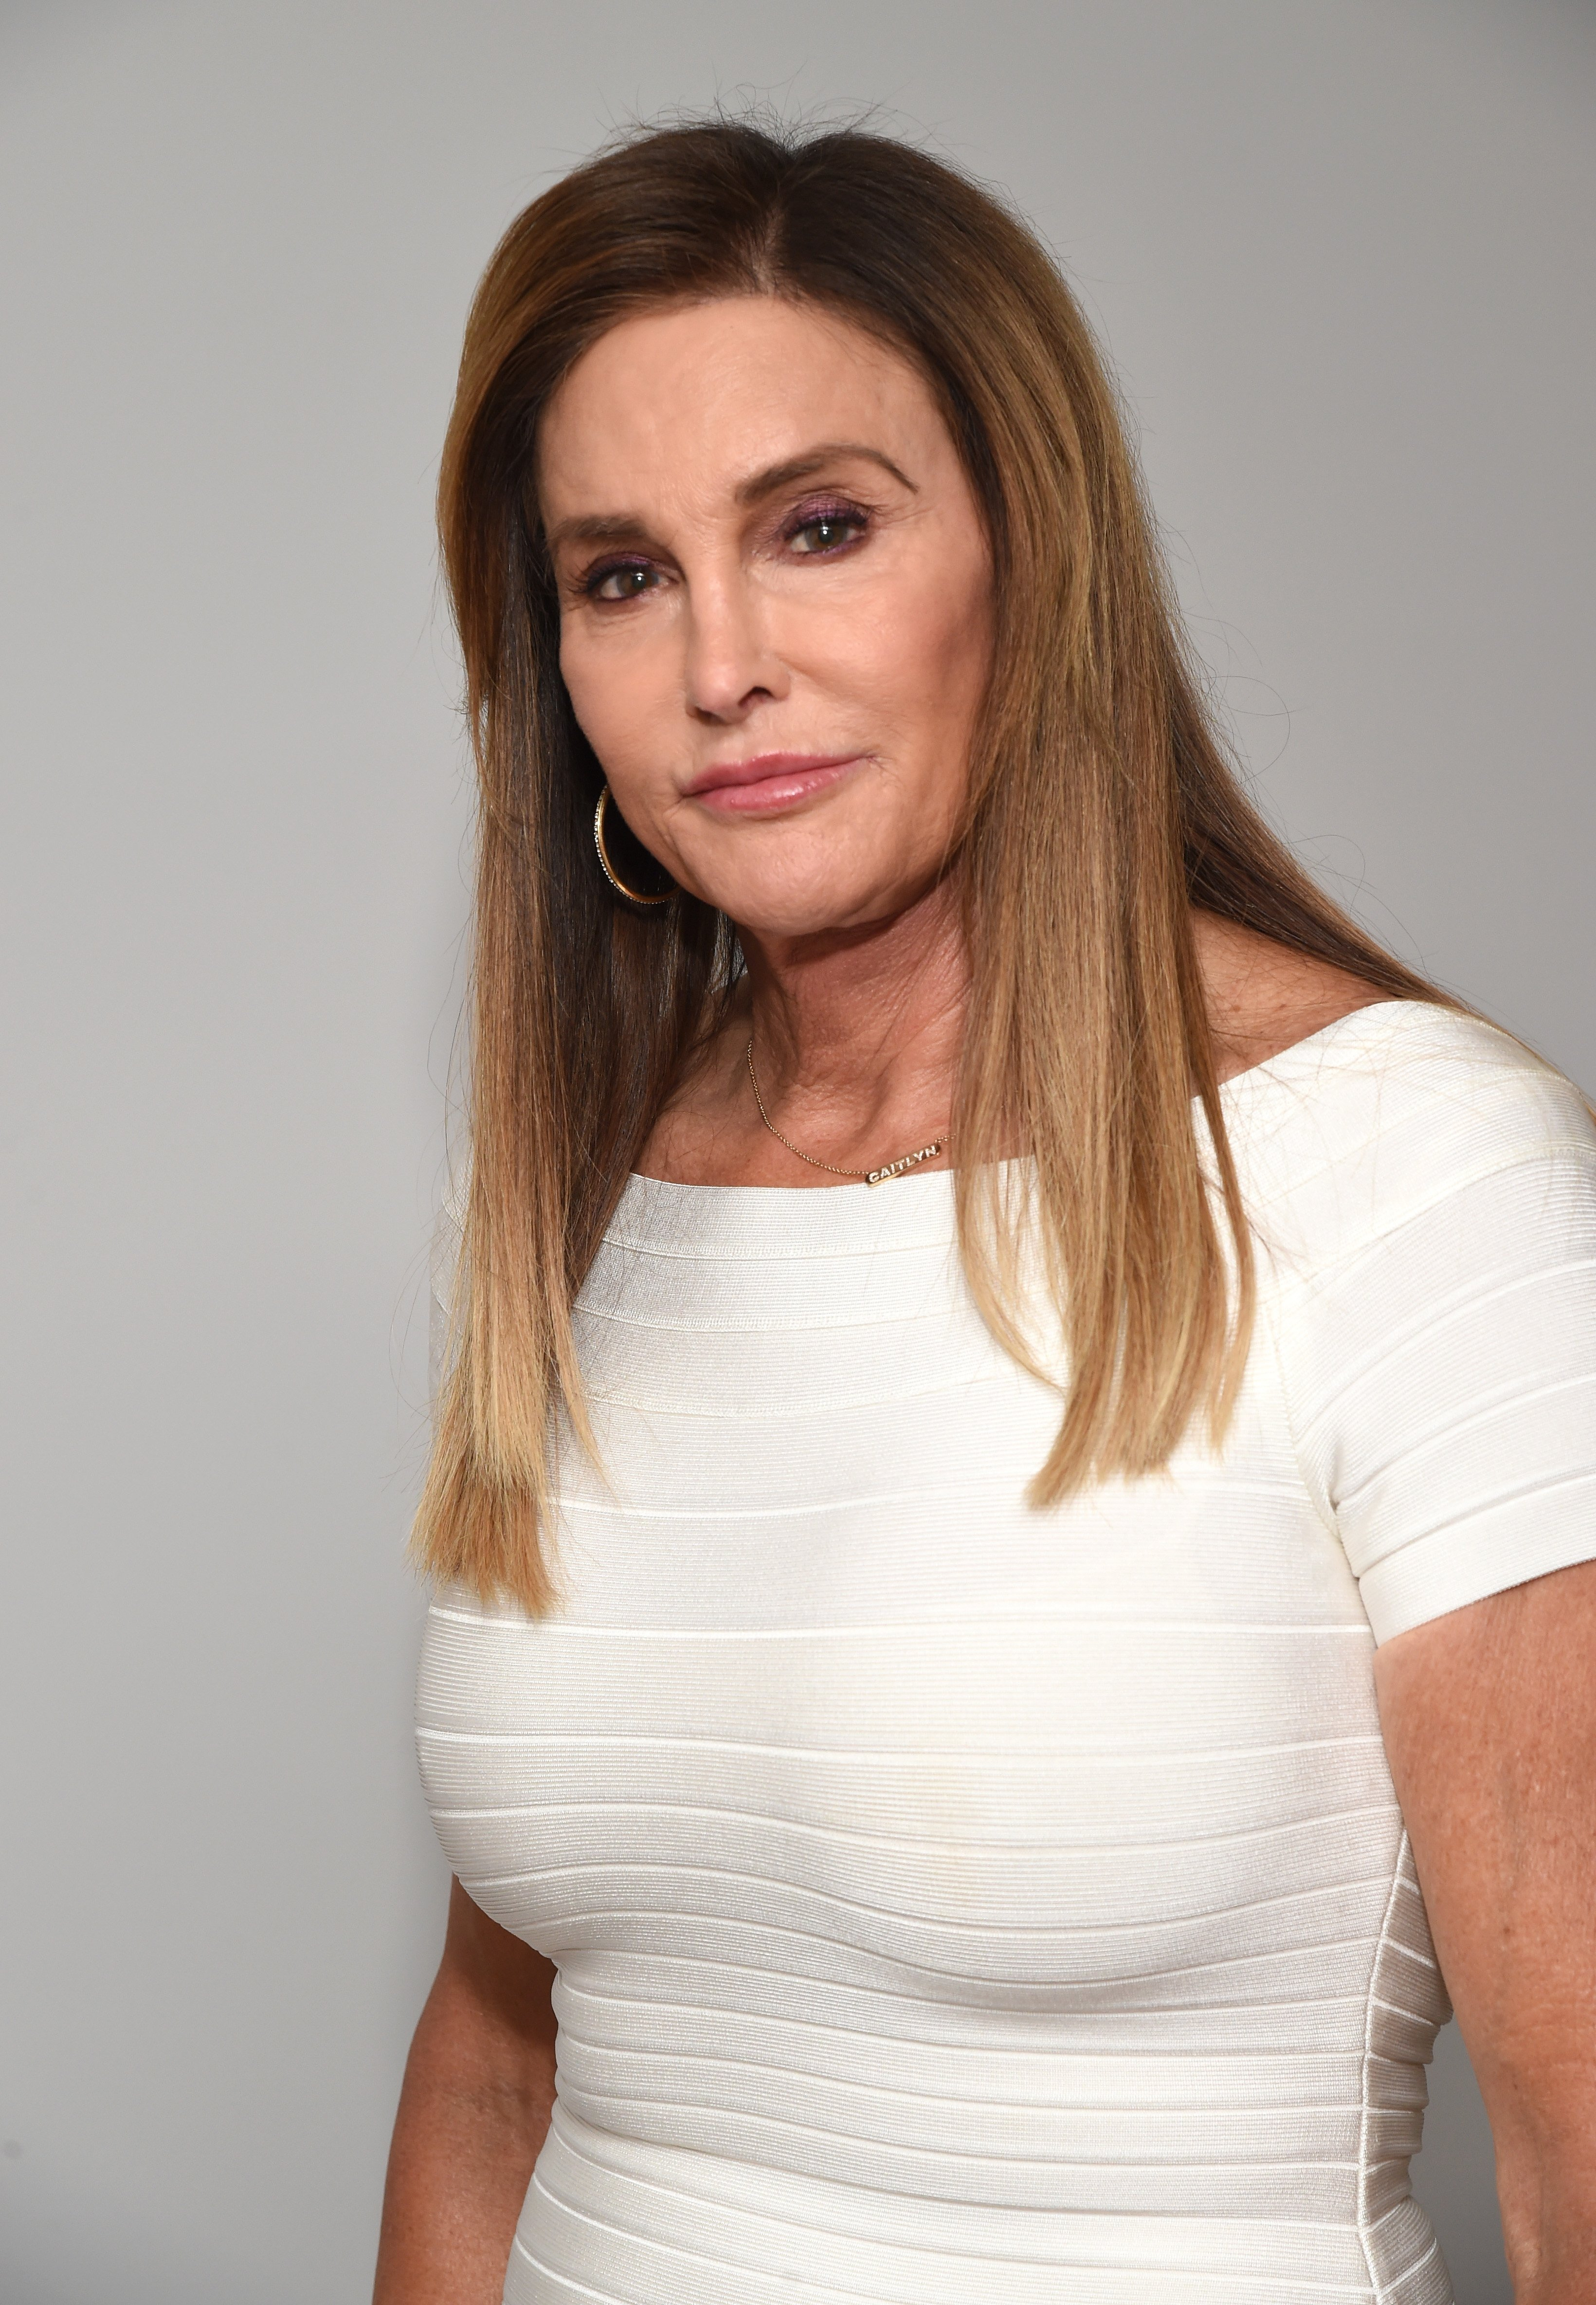 Caitlyn Jenner on August 10, 2017 in Los Angeles, California | Photo: Getty Images